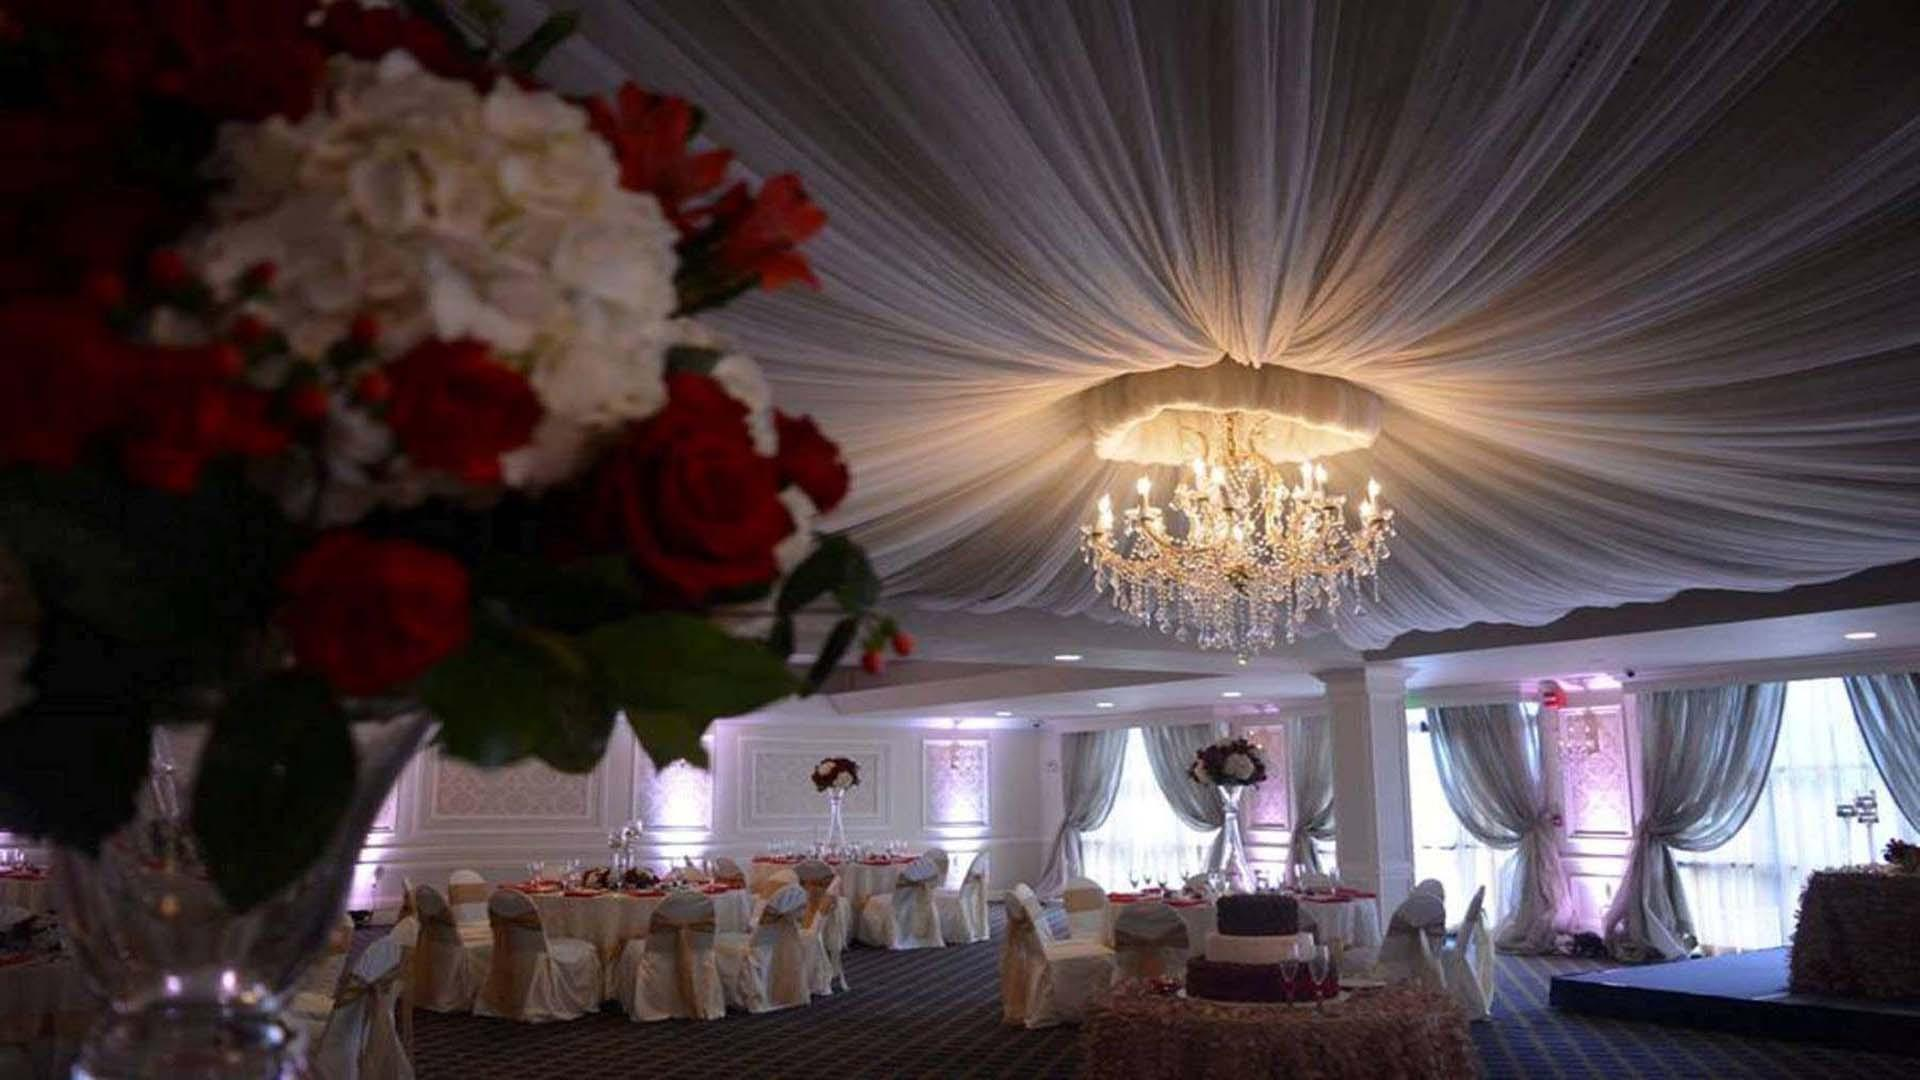 Grand Salon Rent Grand Salon Reception Hall Corporate Events Wedding